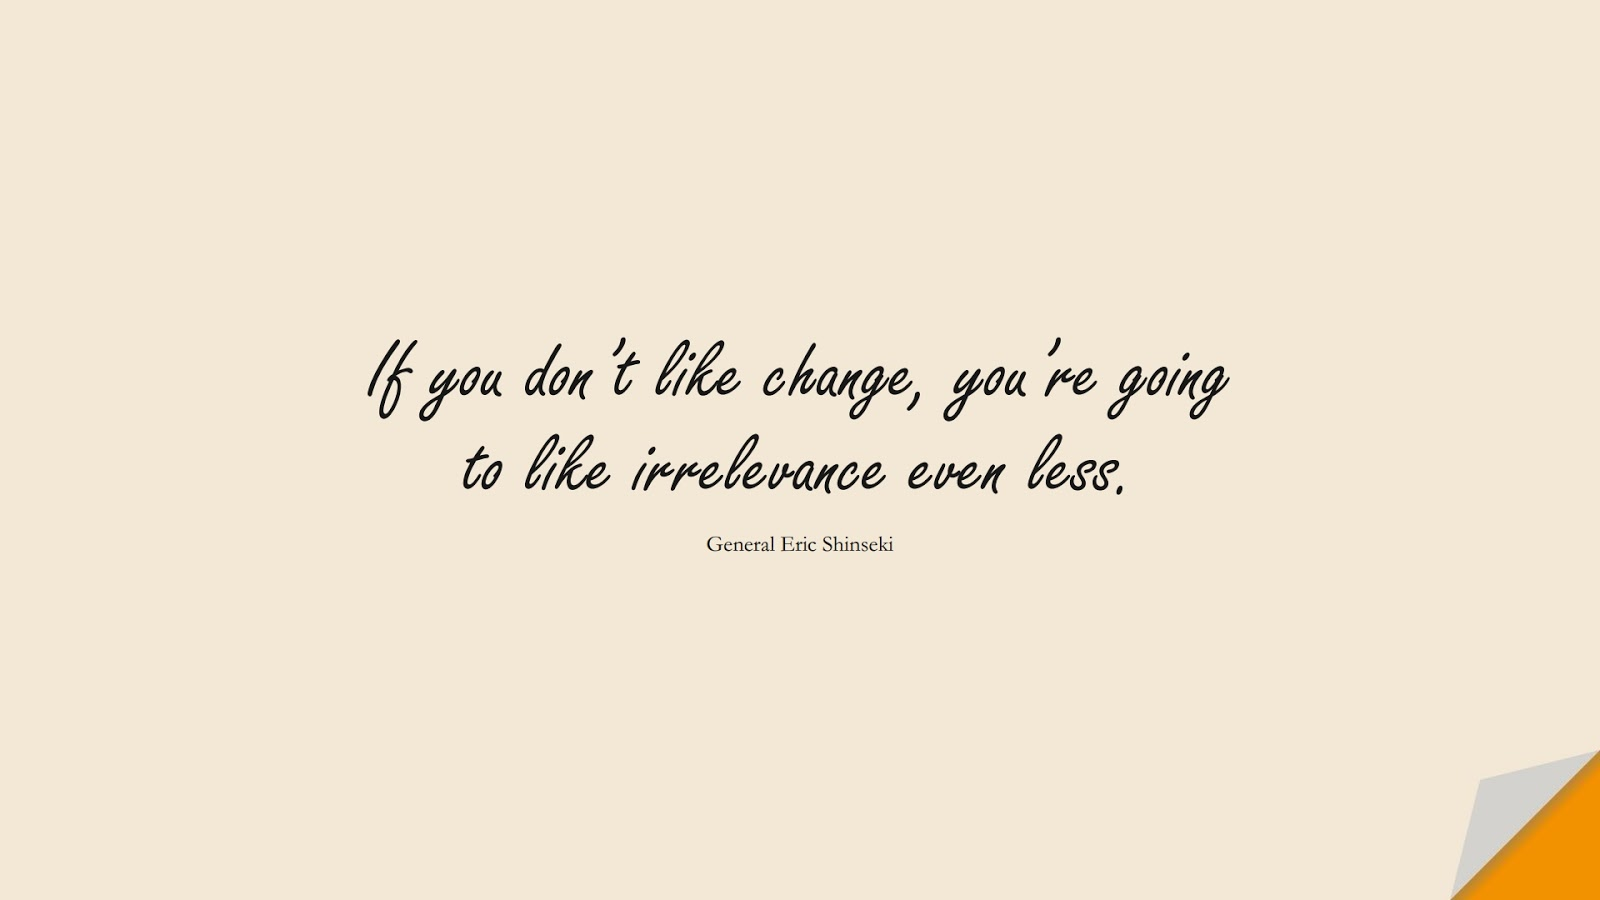 If you don't like change, you're going to like irrelevance even less. (General Eric Shinseki);  #ChangeQuotes